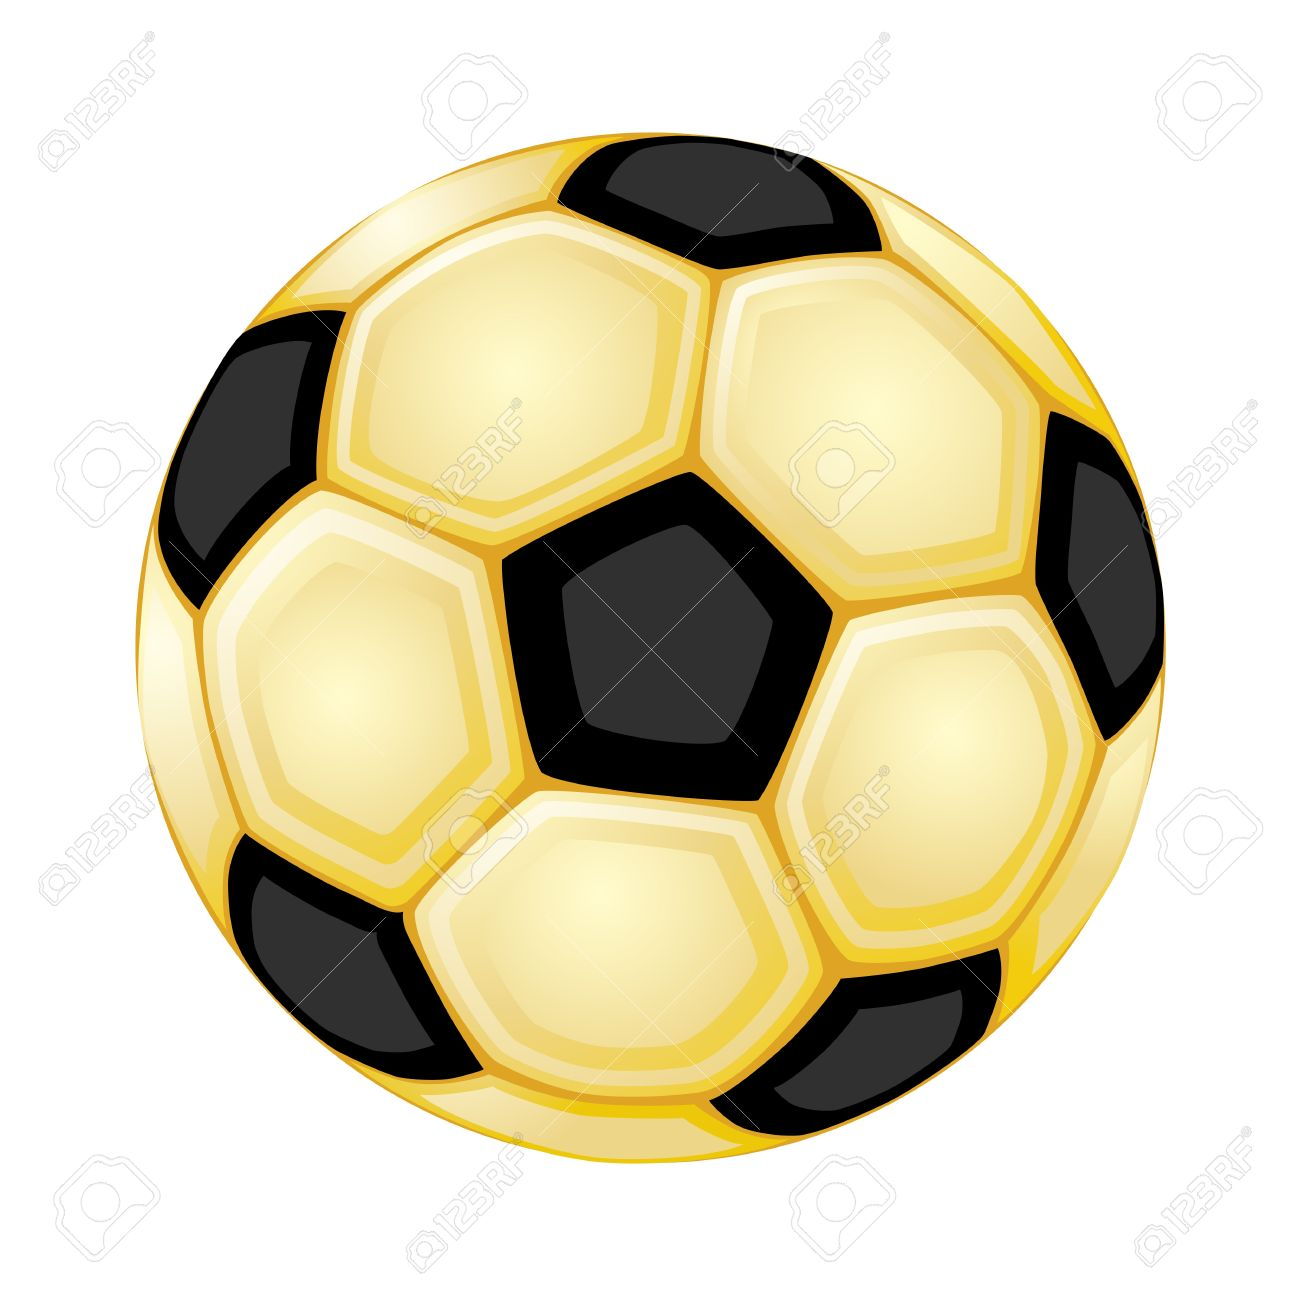 aff10d97e Golden soccer ball. Isolated over white background. Vector file saved as  EPS 8,